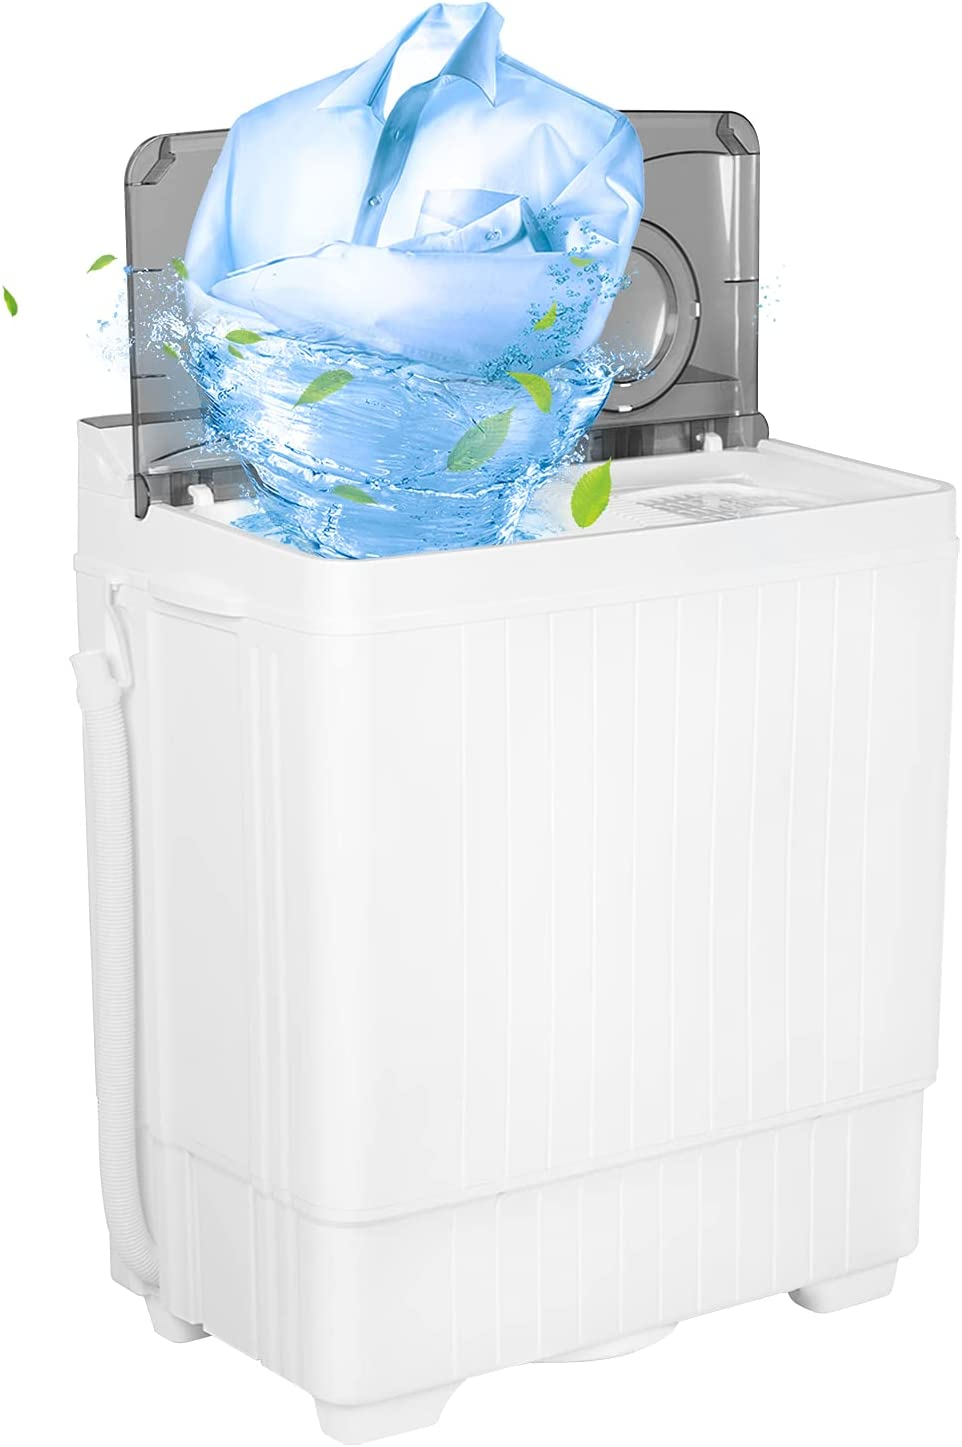 GREENVELLY Portable Washing Machine Washer, 24lbs Small Apartment Washer and Spin Dryer Combo, Mini Twin-Tub Washing Machine, Small Laundry Washer for Dorms College RV Home (Grey)